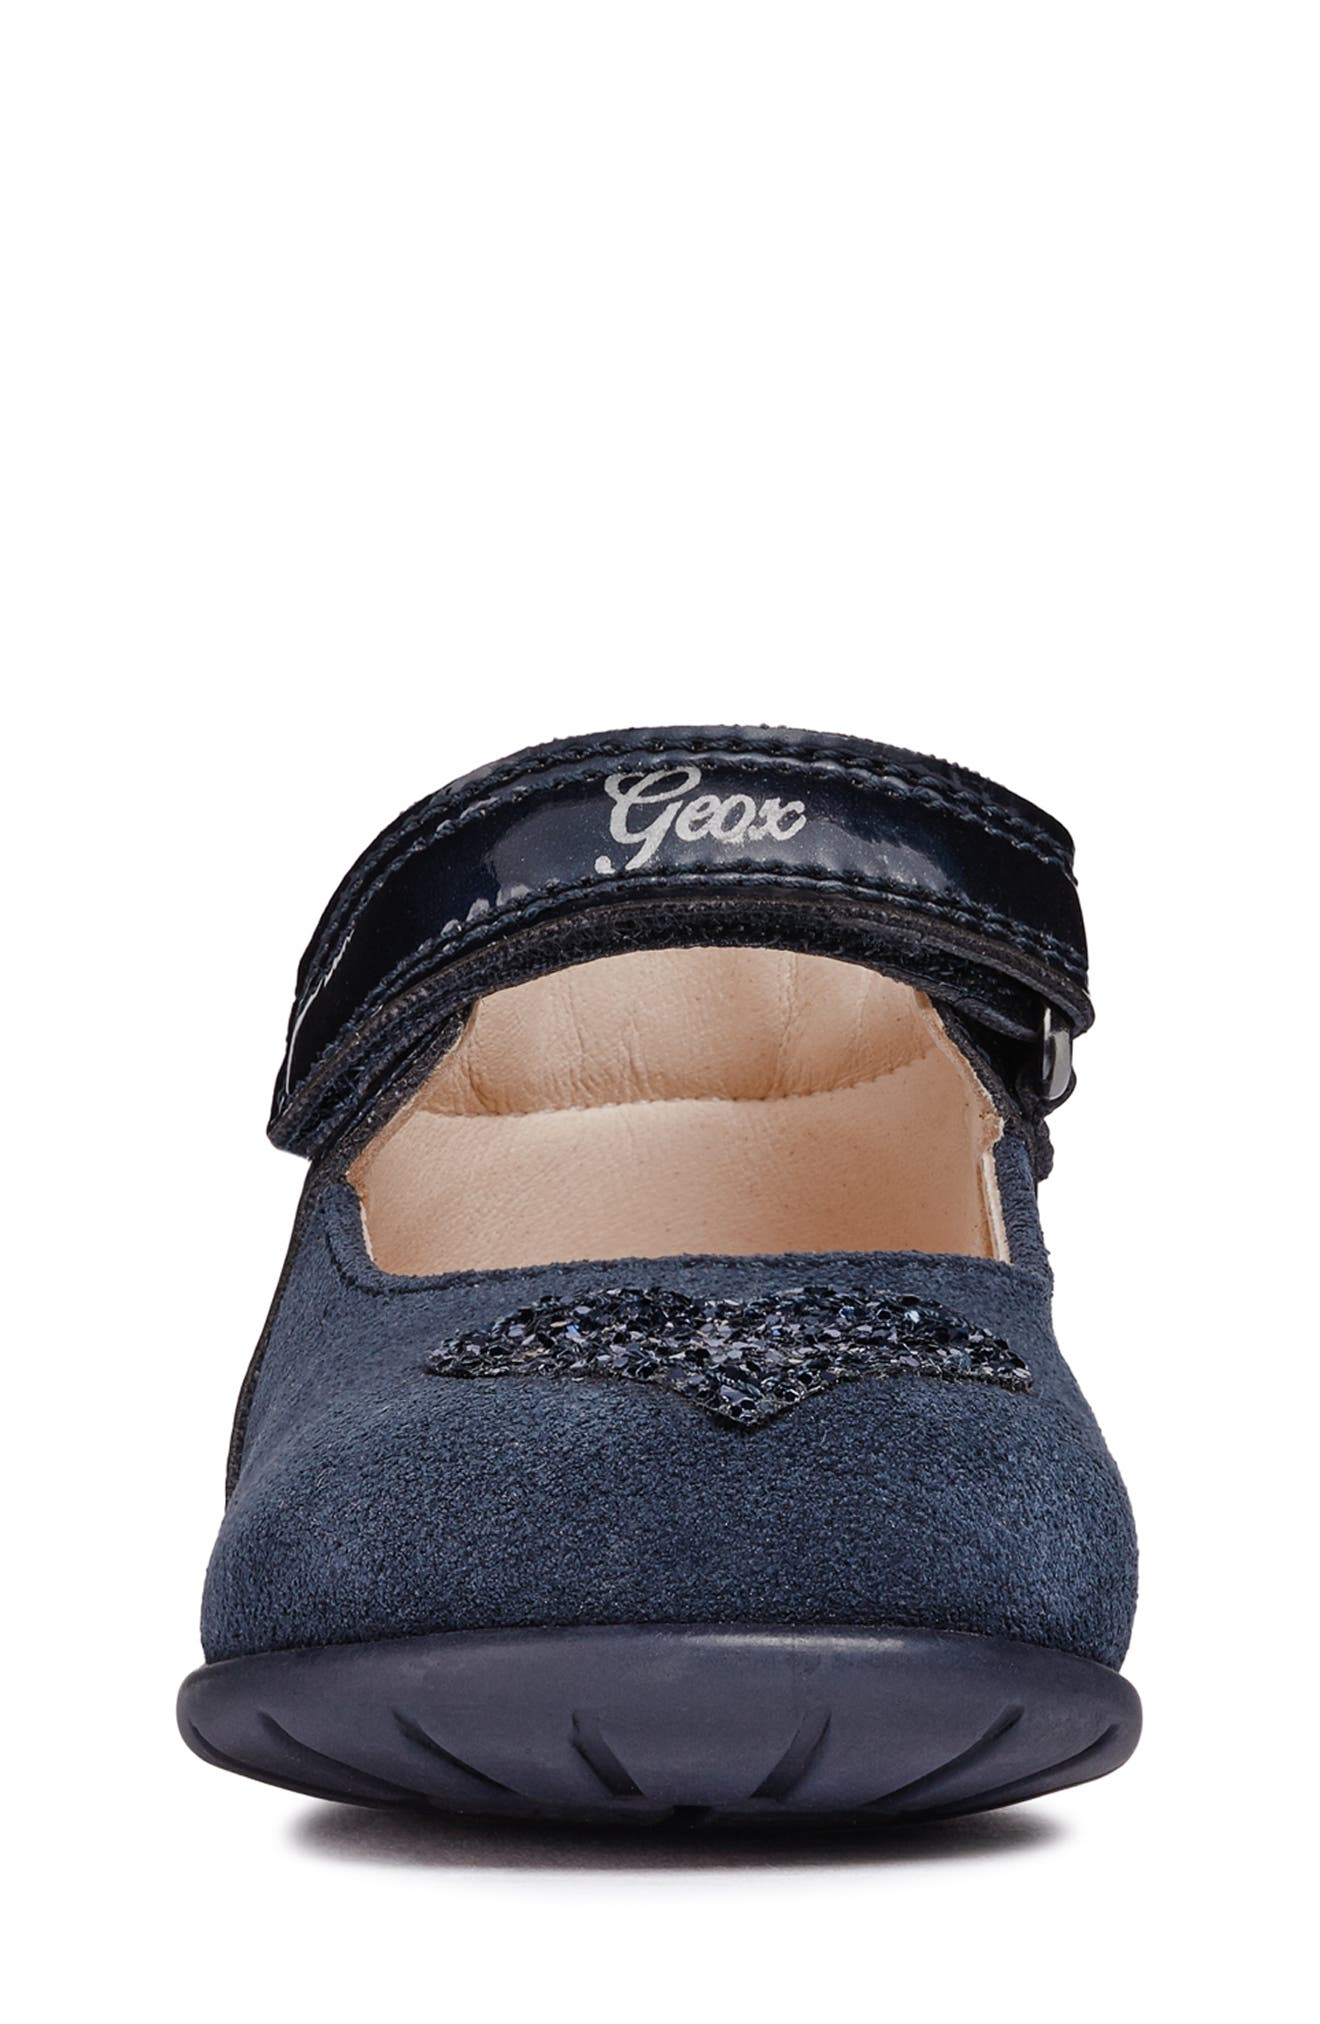 Kaytan Glitter Mary Jane Flat,                             Alternate thumbnail 4, color,                             NAVY